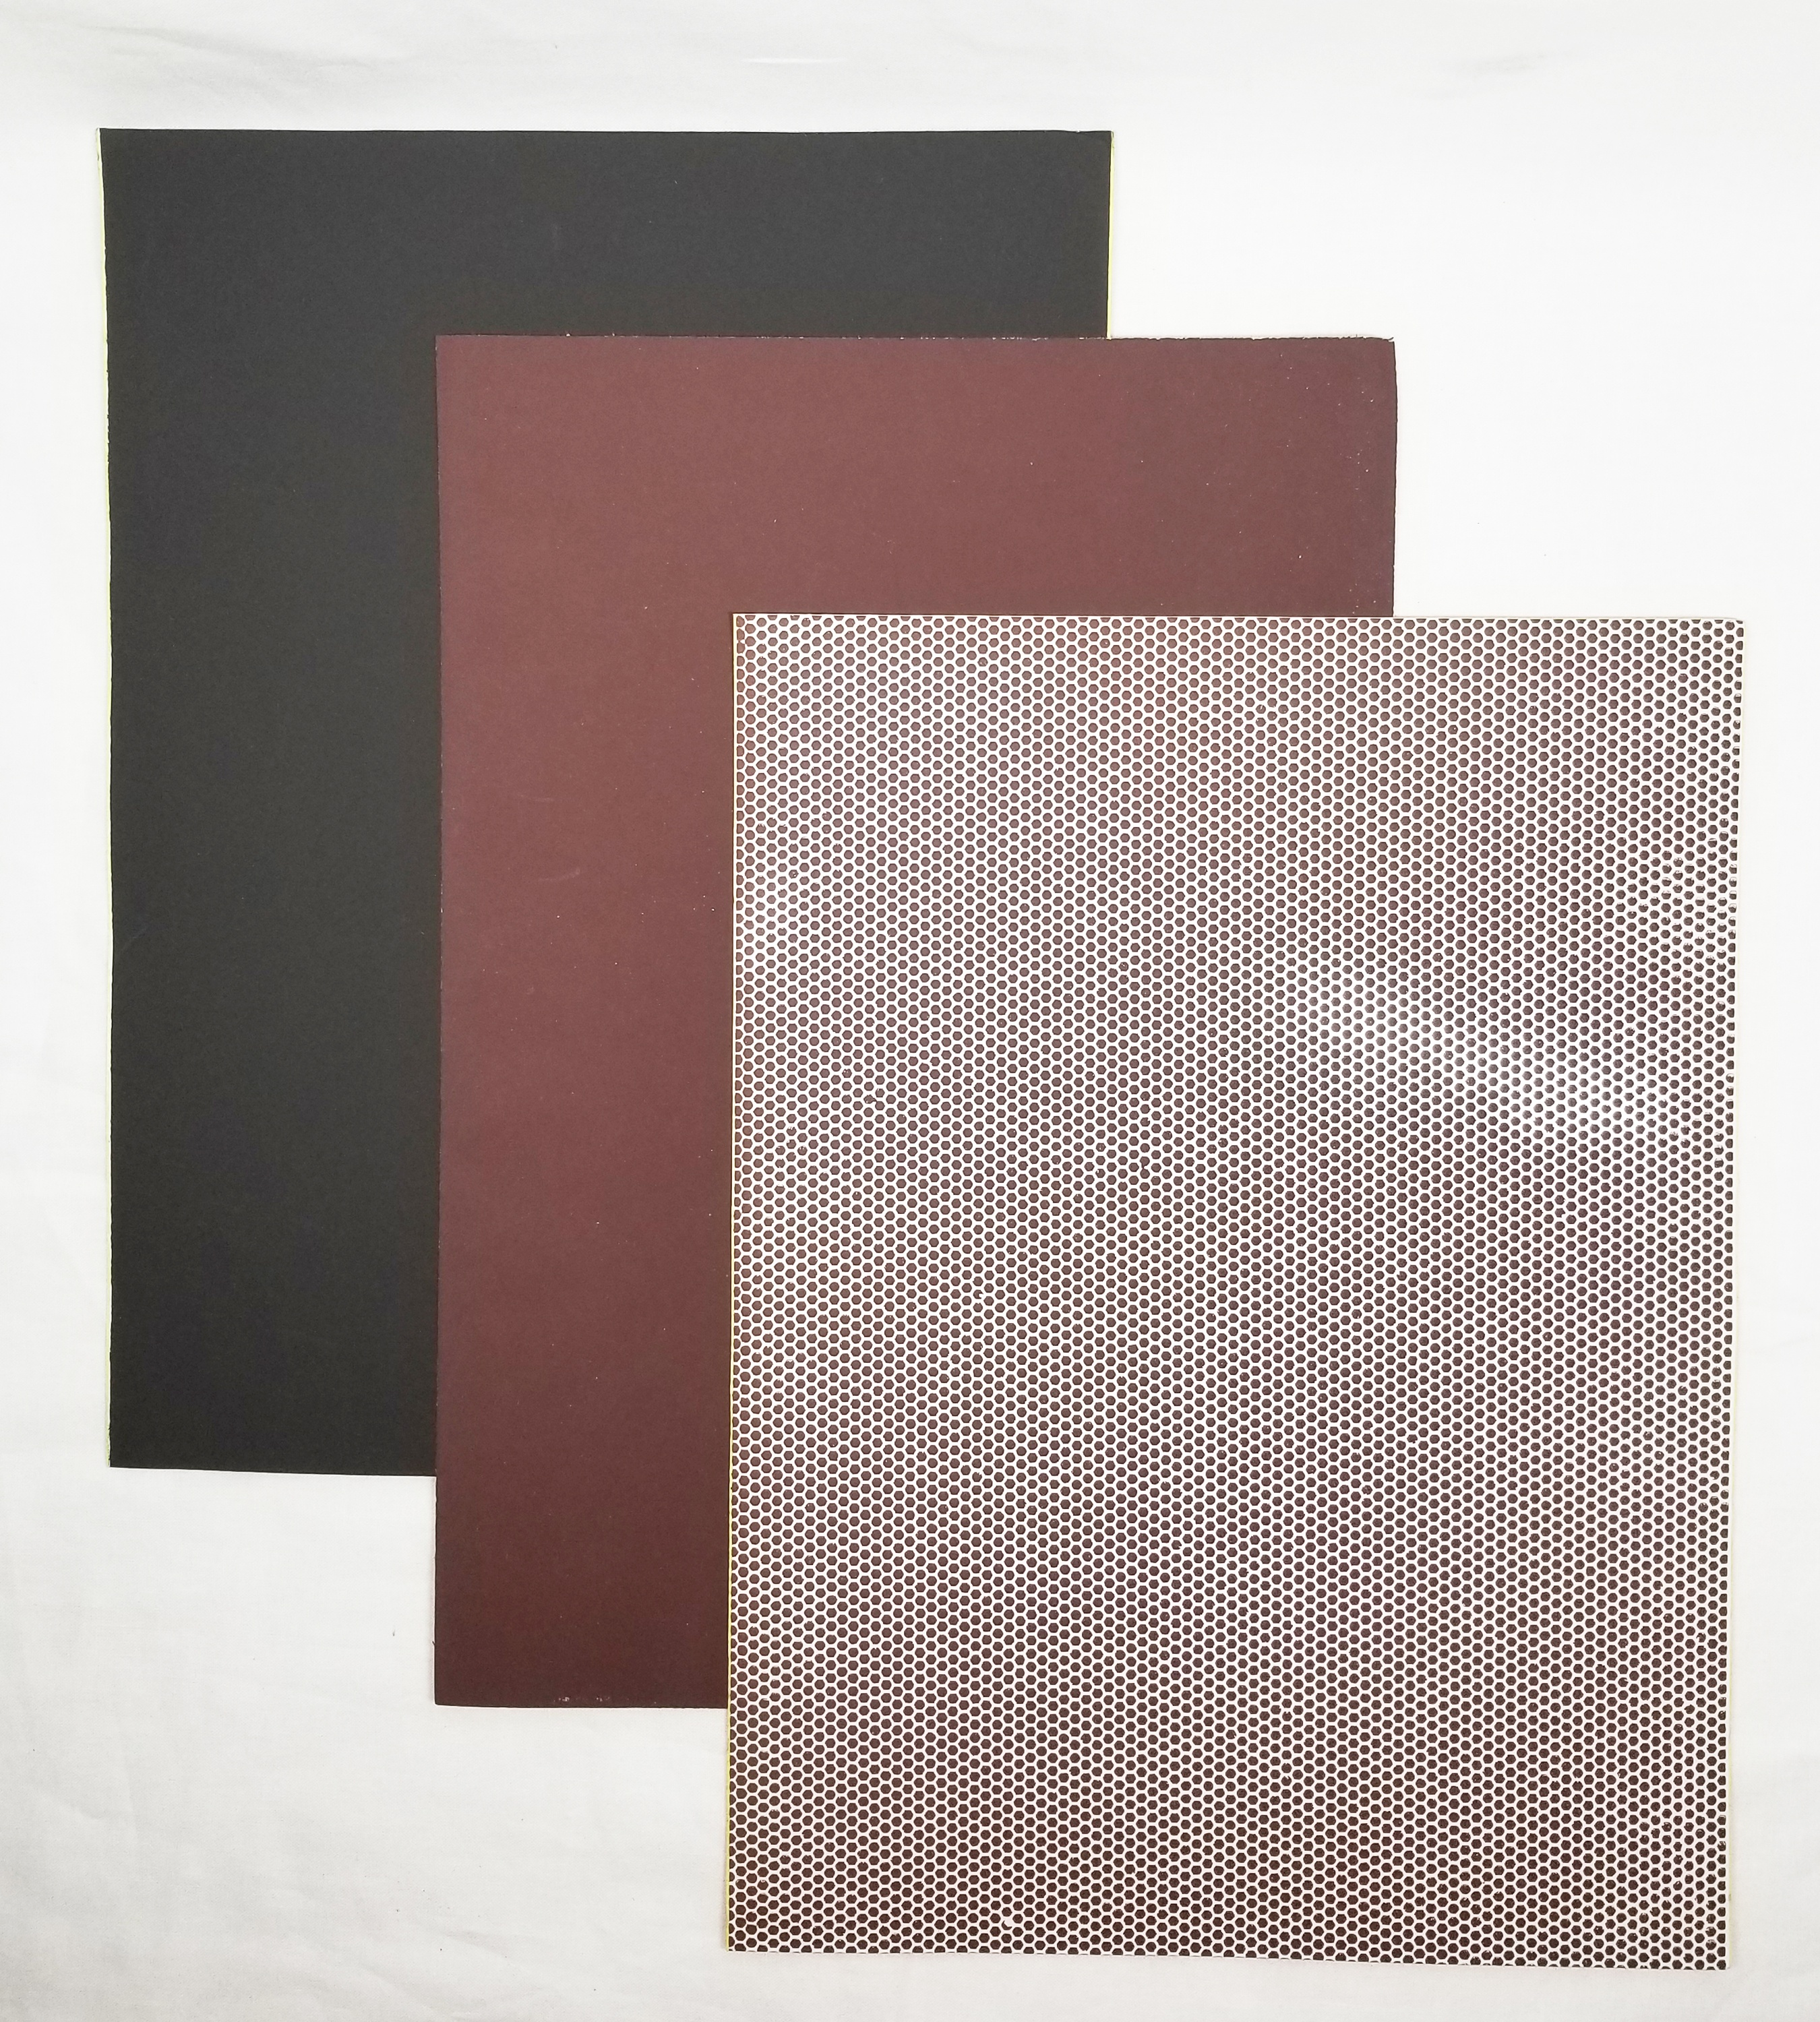 Match strike paper in 3 colors - dark gray, brown, and honeycomb pattern (dotted)